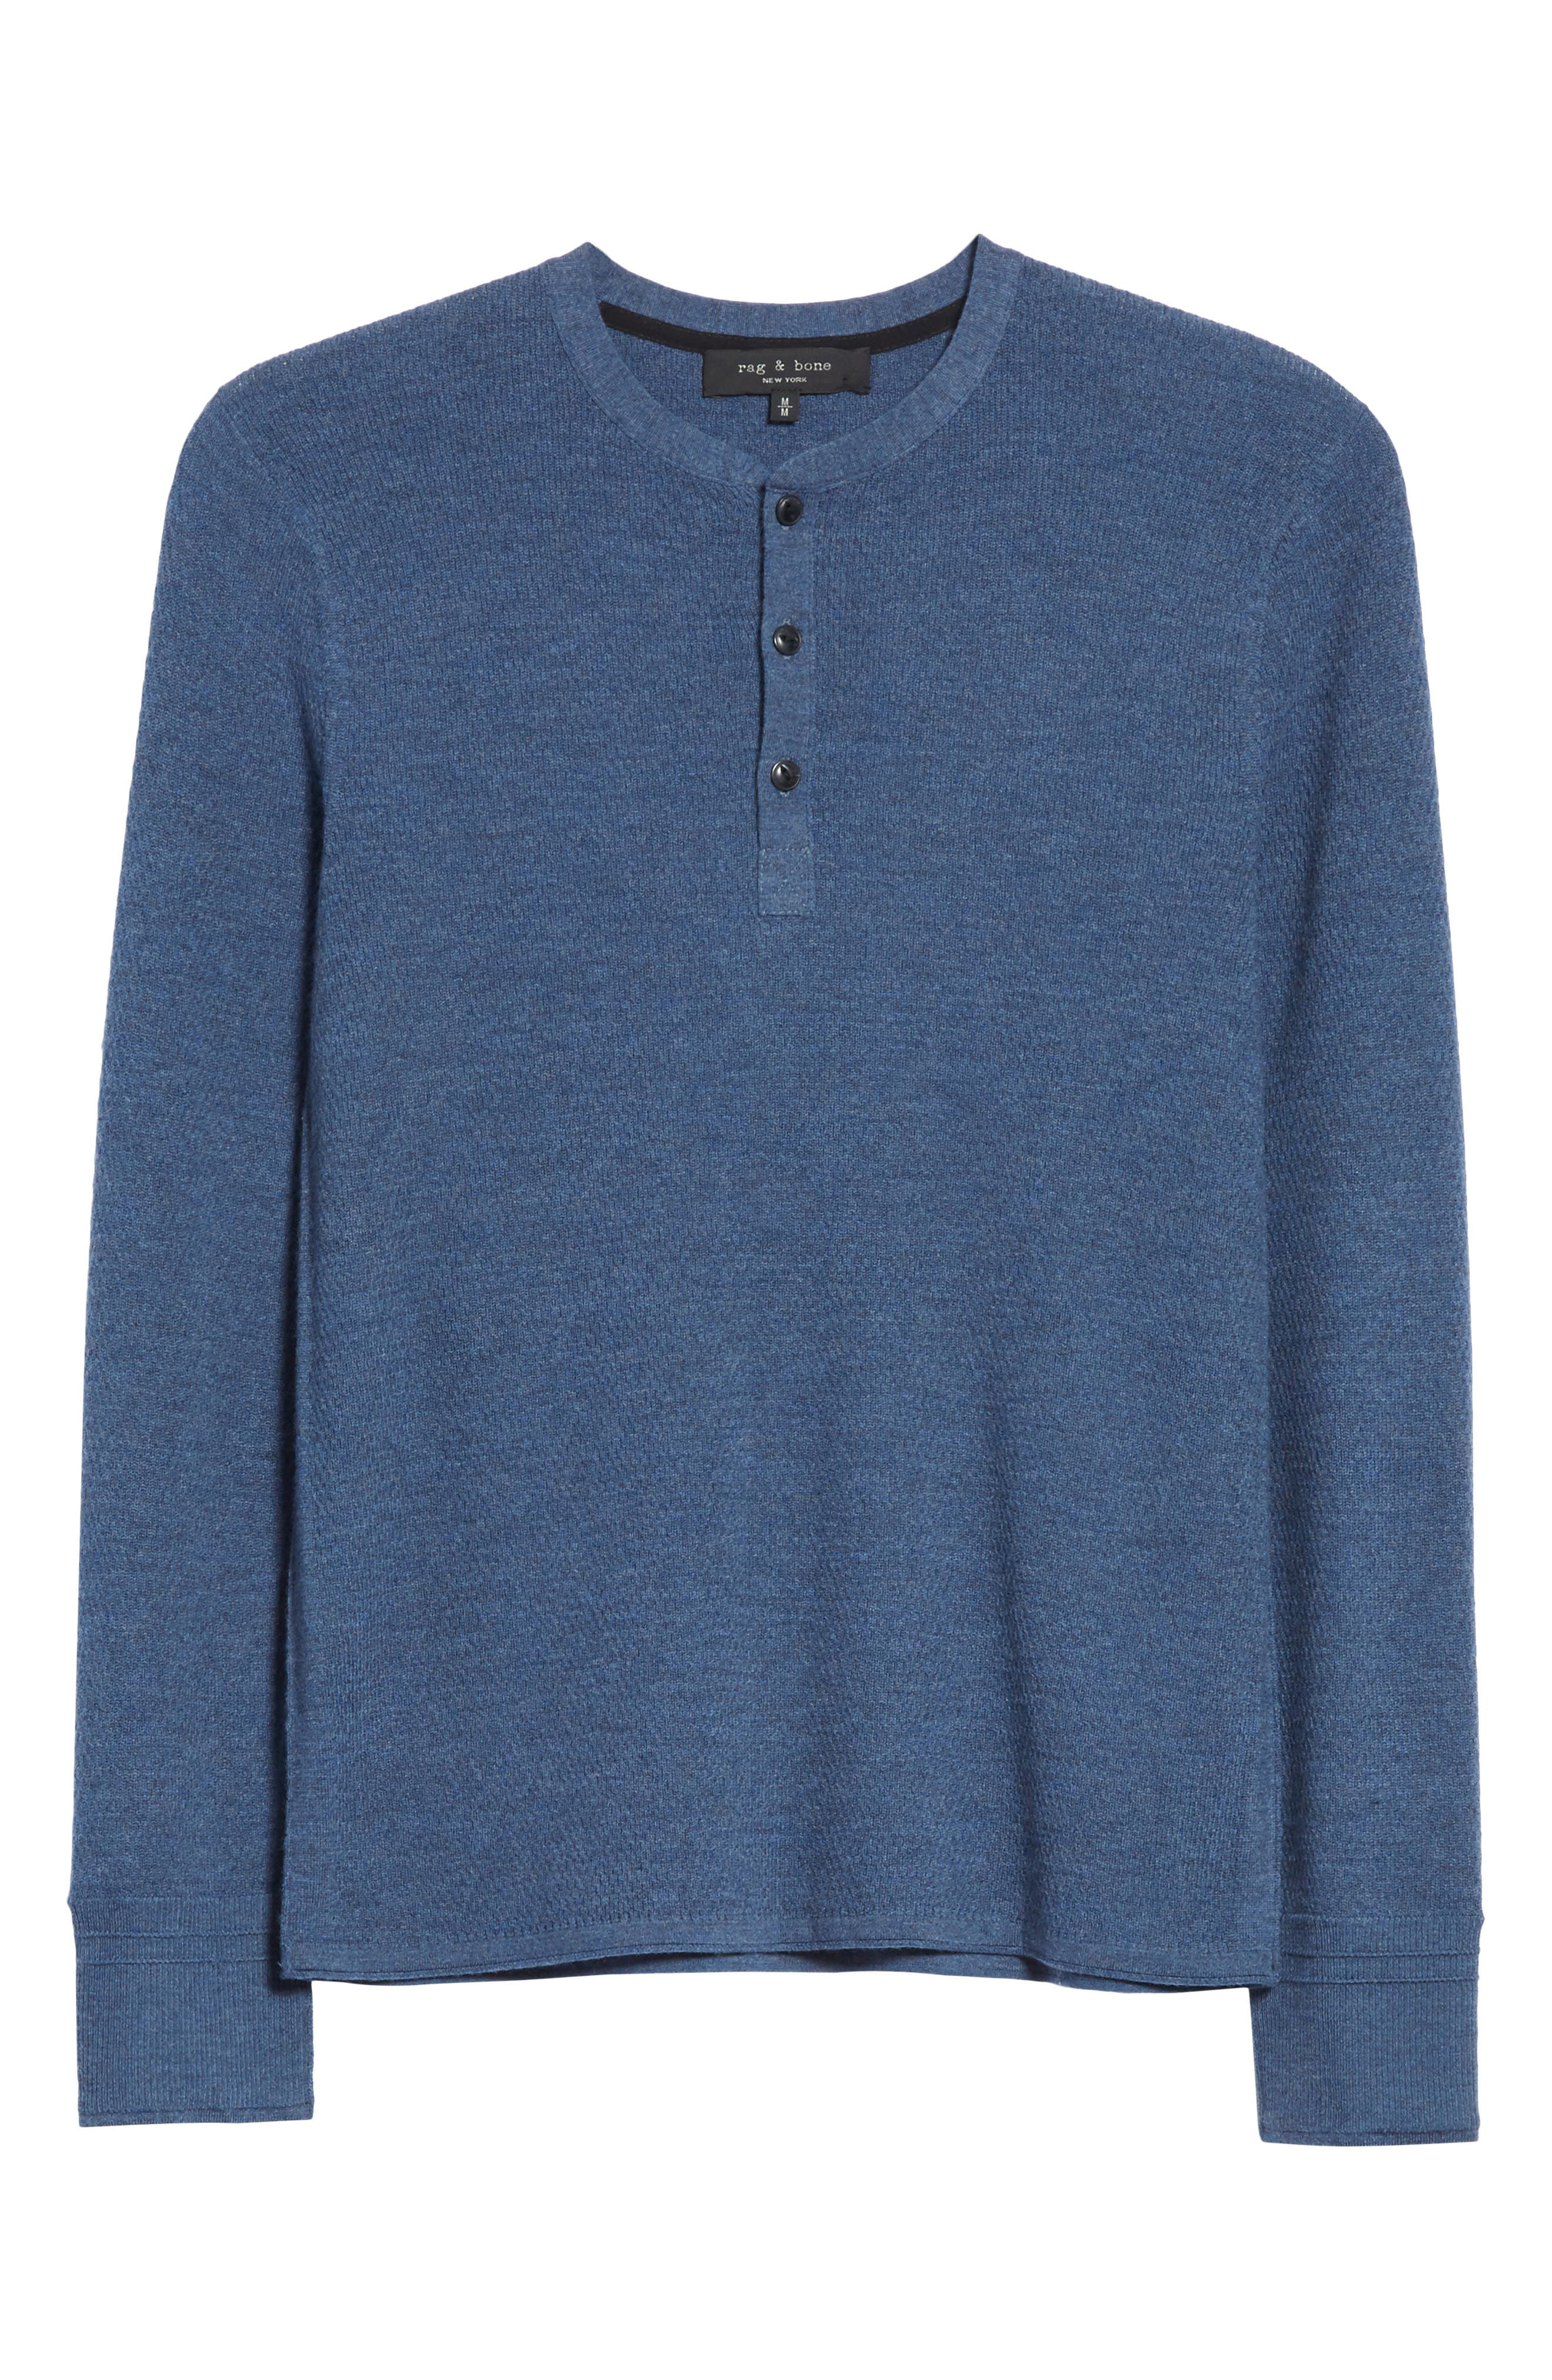 Gregory Merino Wool Blend Thermal Henley,                             Alternate thumbnail 6, color,                             Heather Blue